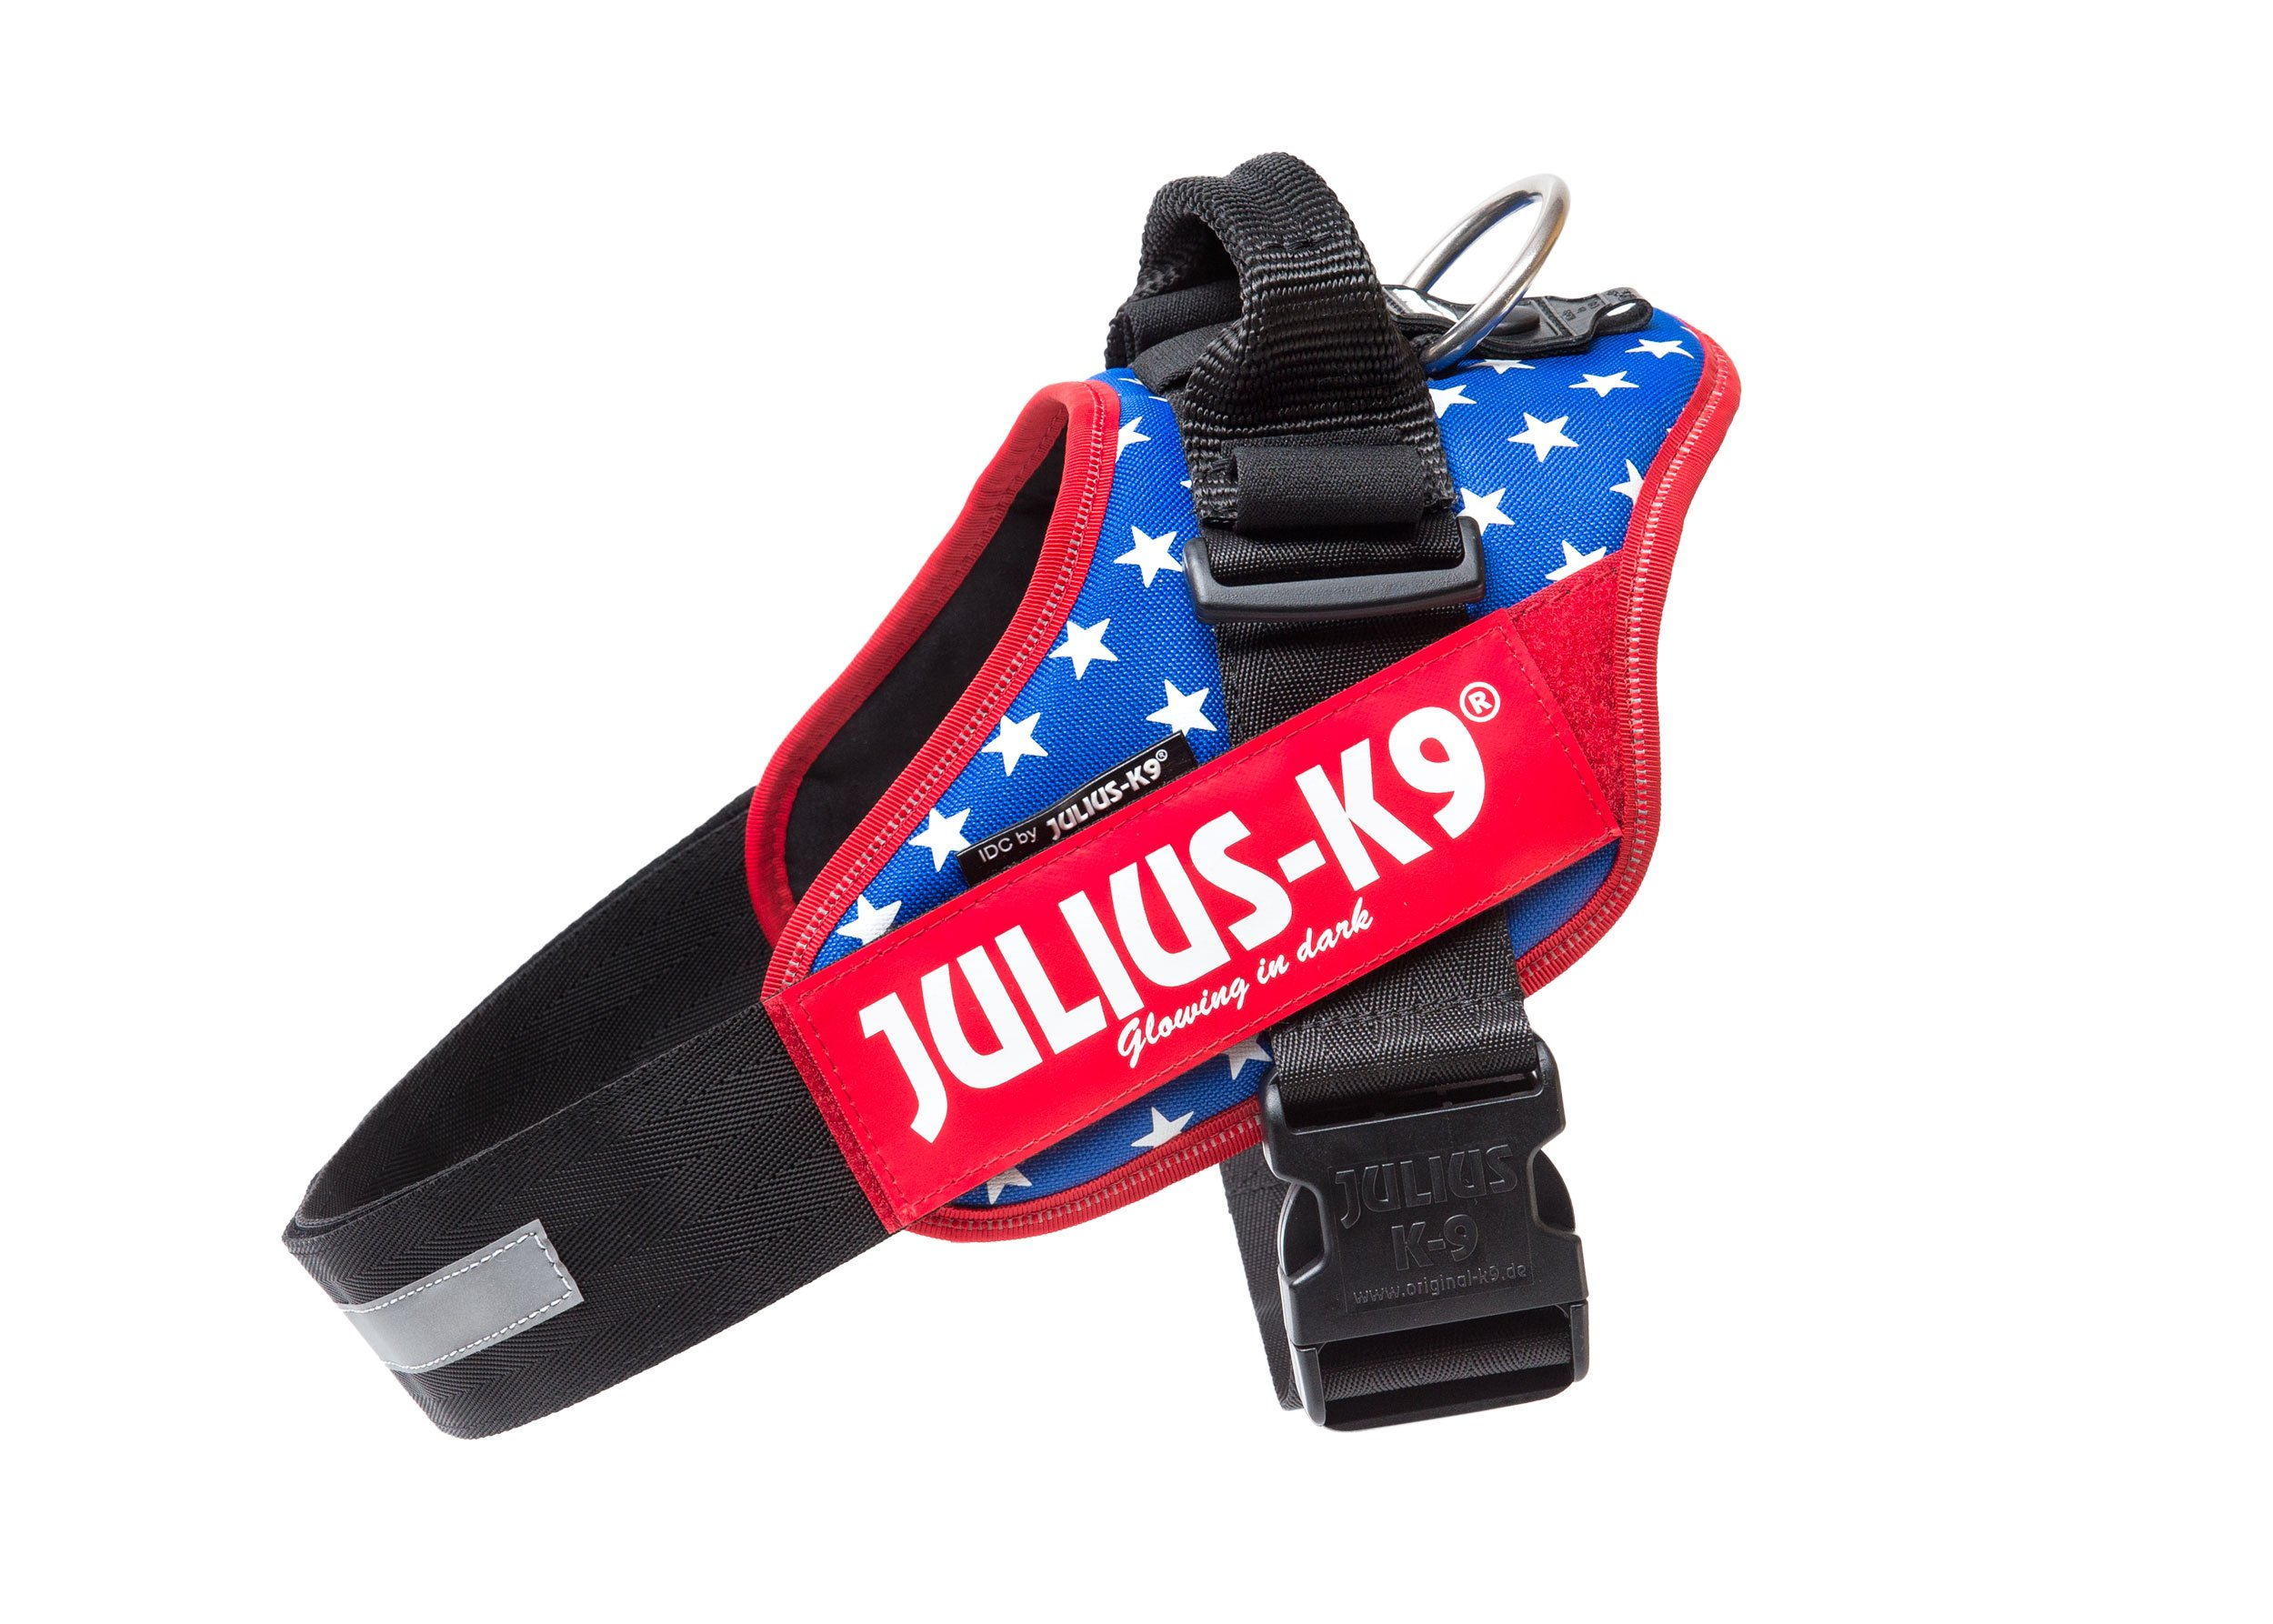 Julius-K9 IDC-Power Harness with Illuminated Velcro Patches, Ameri-Canis, Size: 1/63-85 cm/26-33.5''